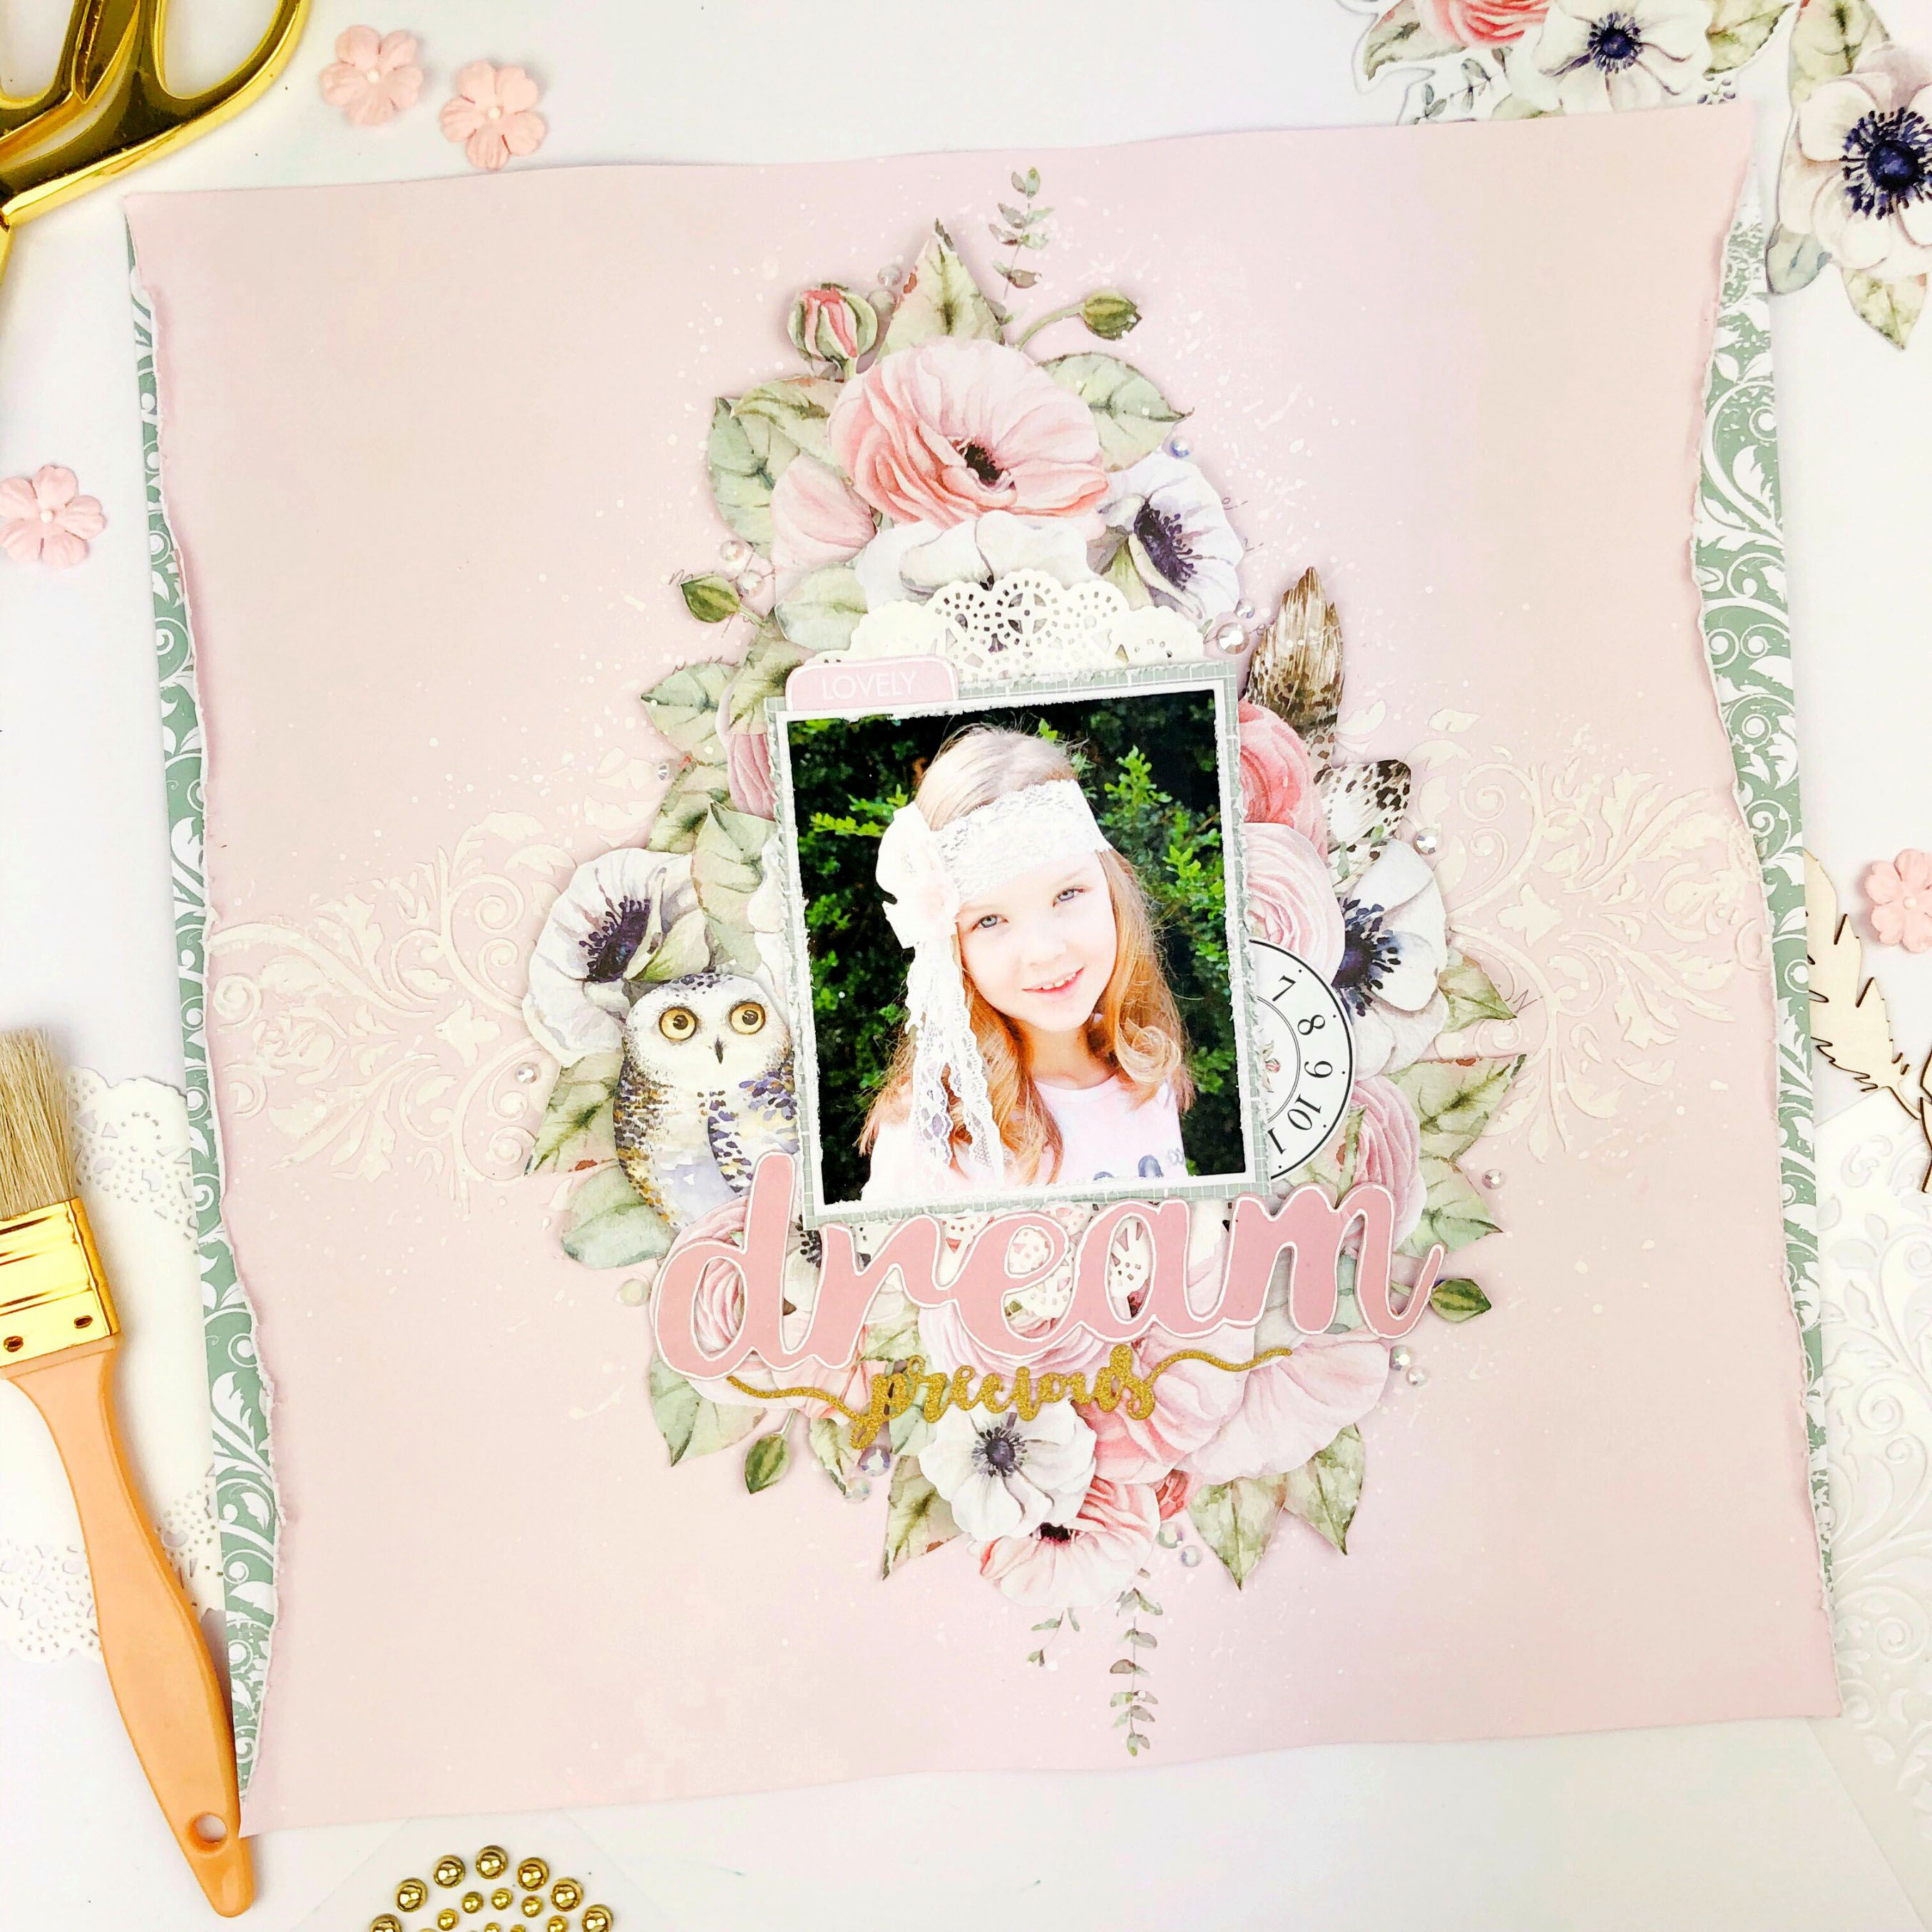 Shabby Chic Scrapbook Layout in 2020 | Shabby chic ...